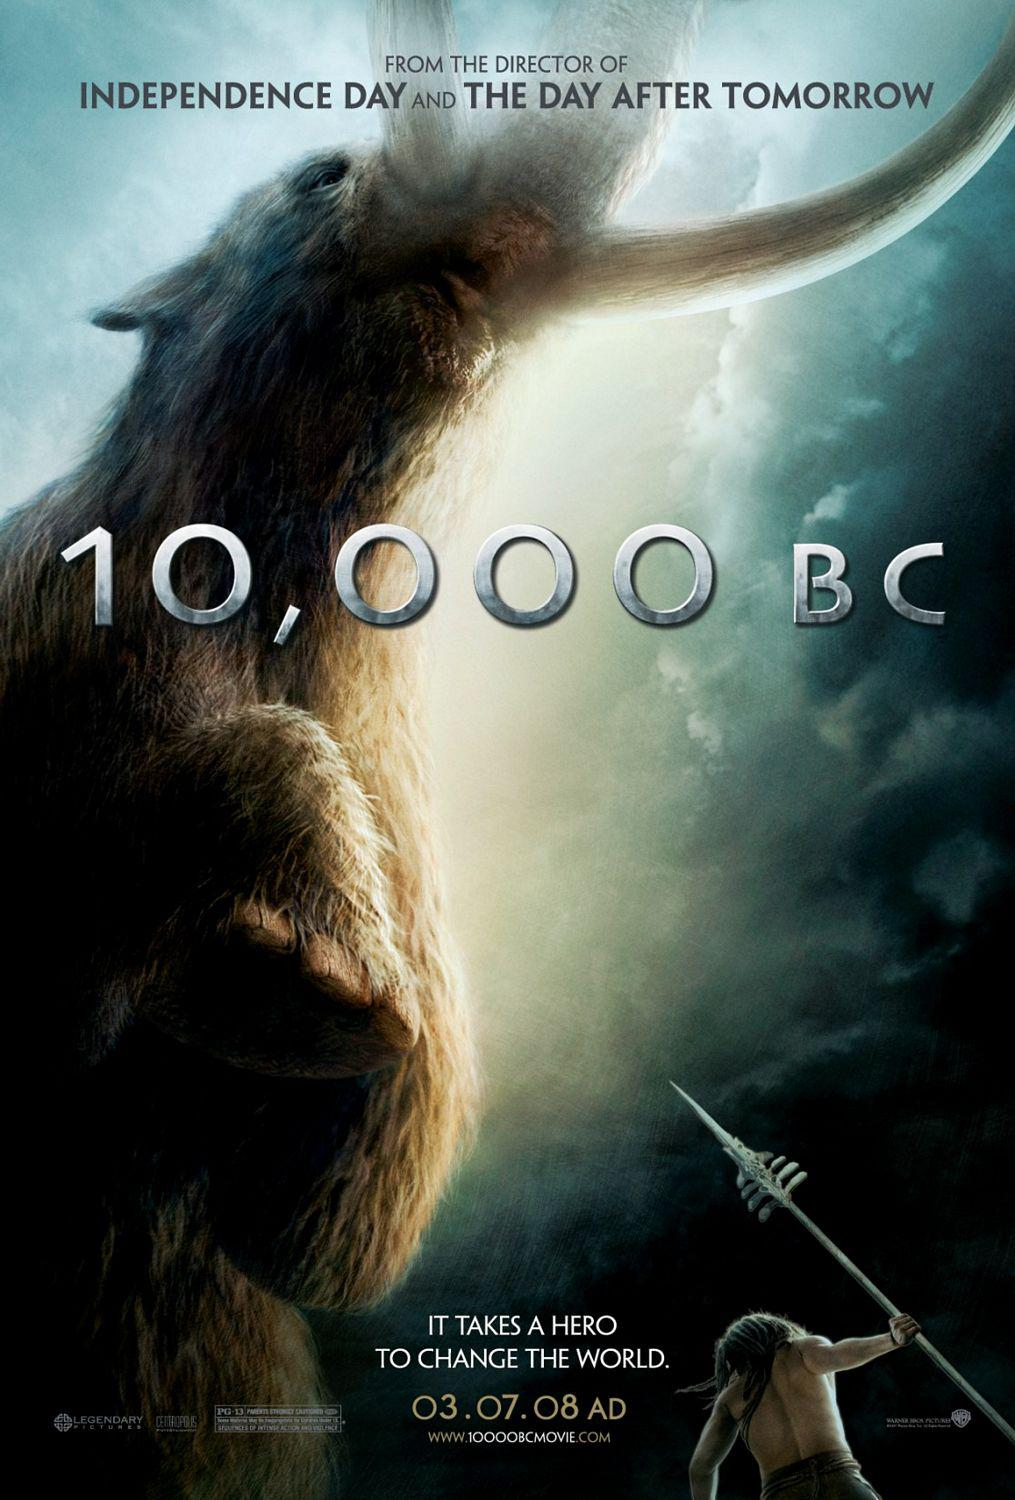 Ten Thousand BC - 10000 BC  - poster - Mammut - Mammout - Mammouth - ancient elephant